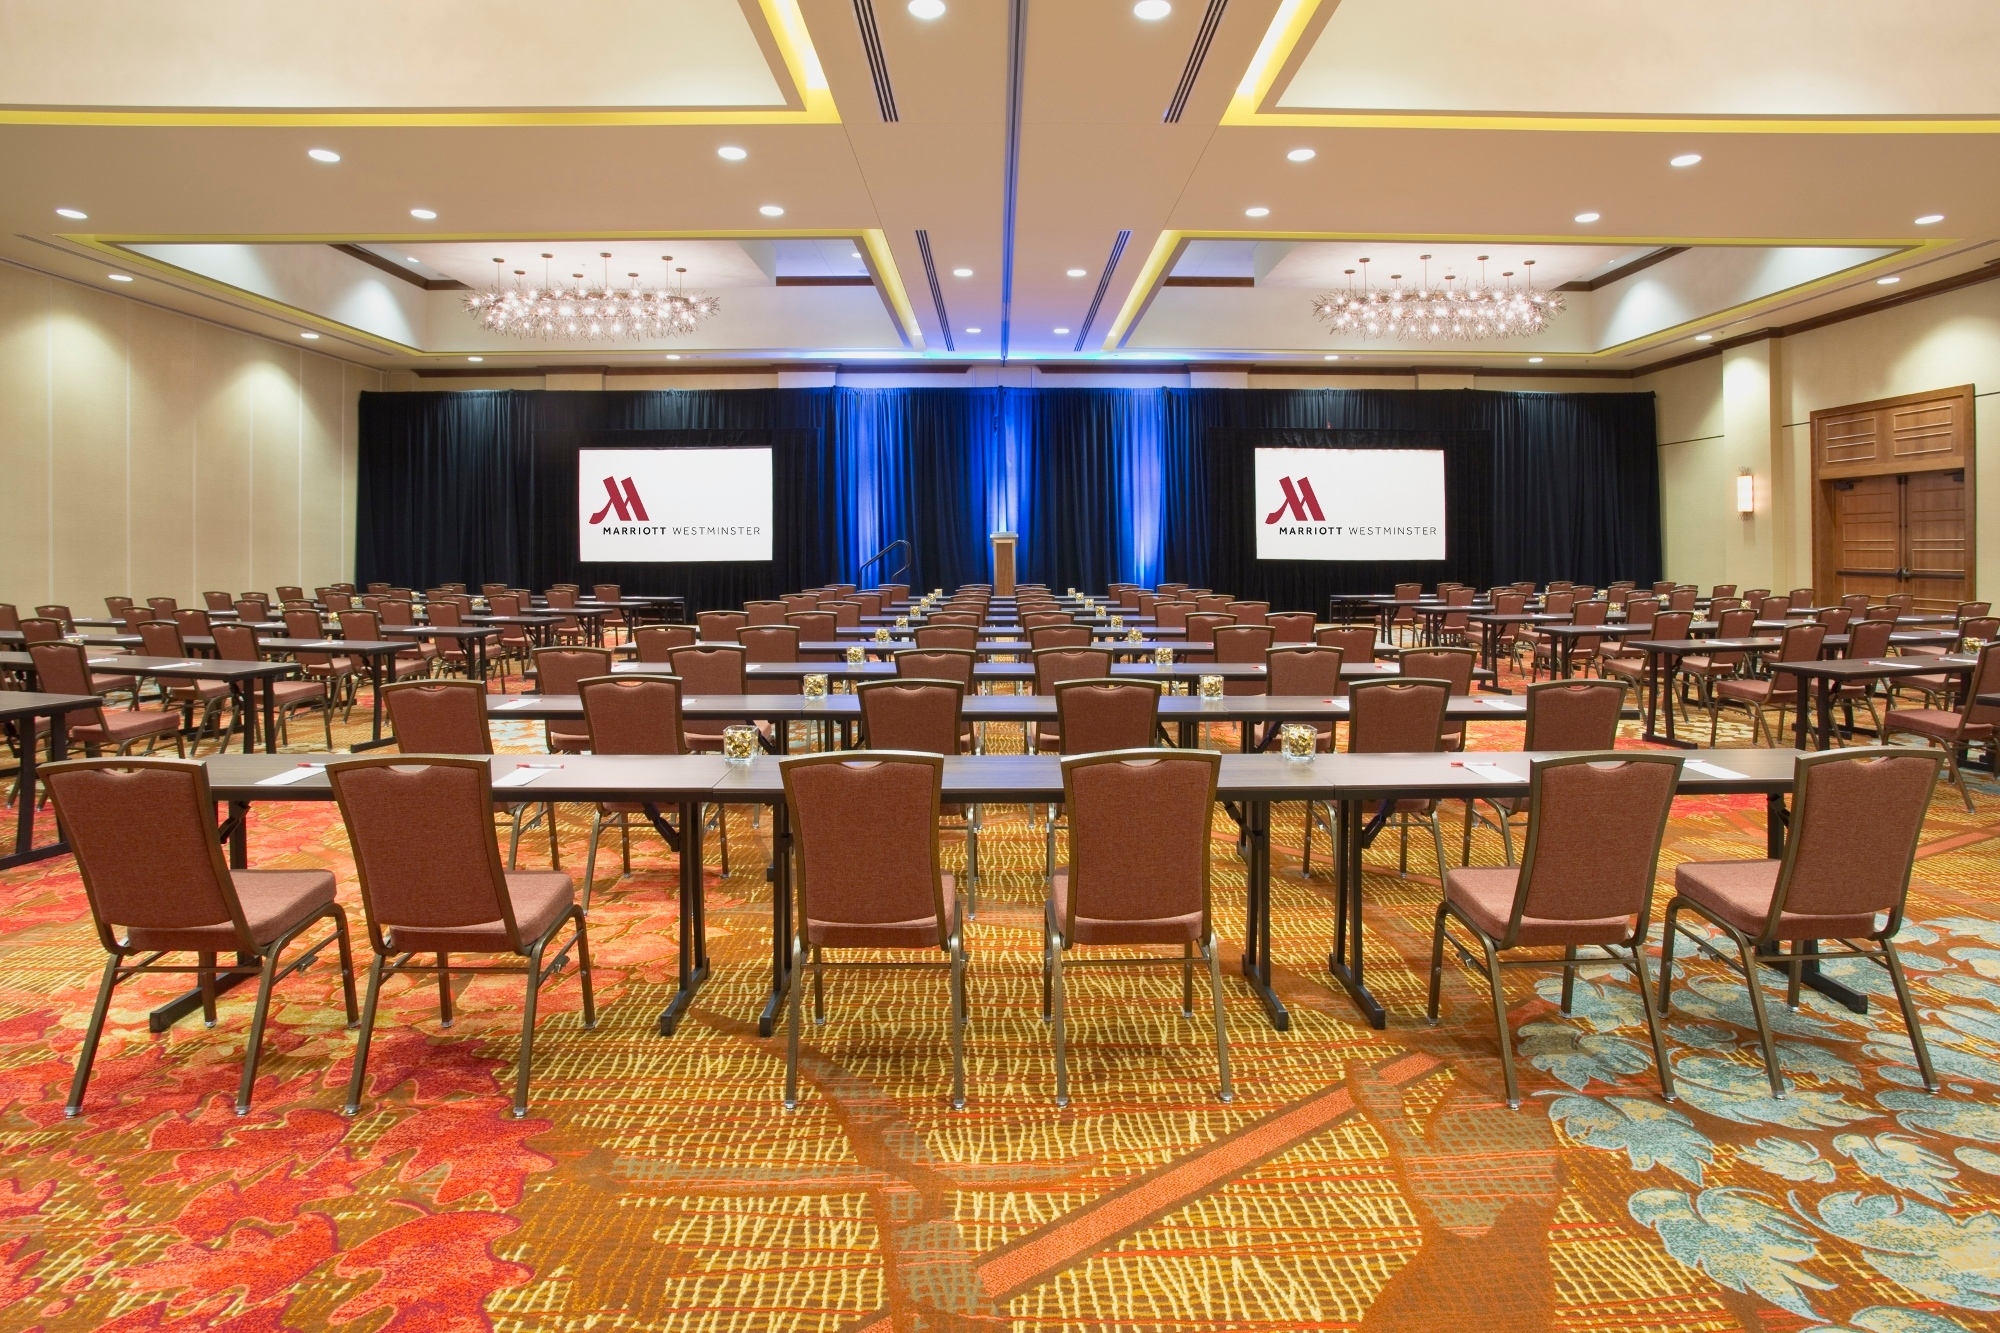 Denver Marriott Westminster image 23